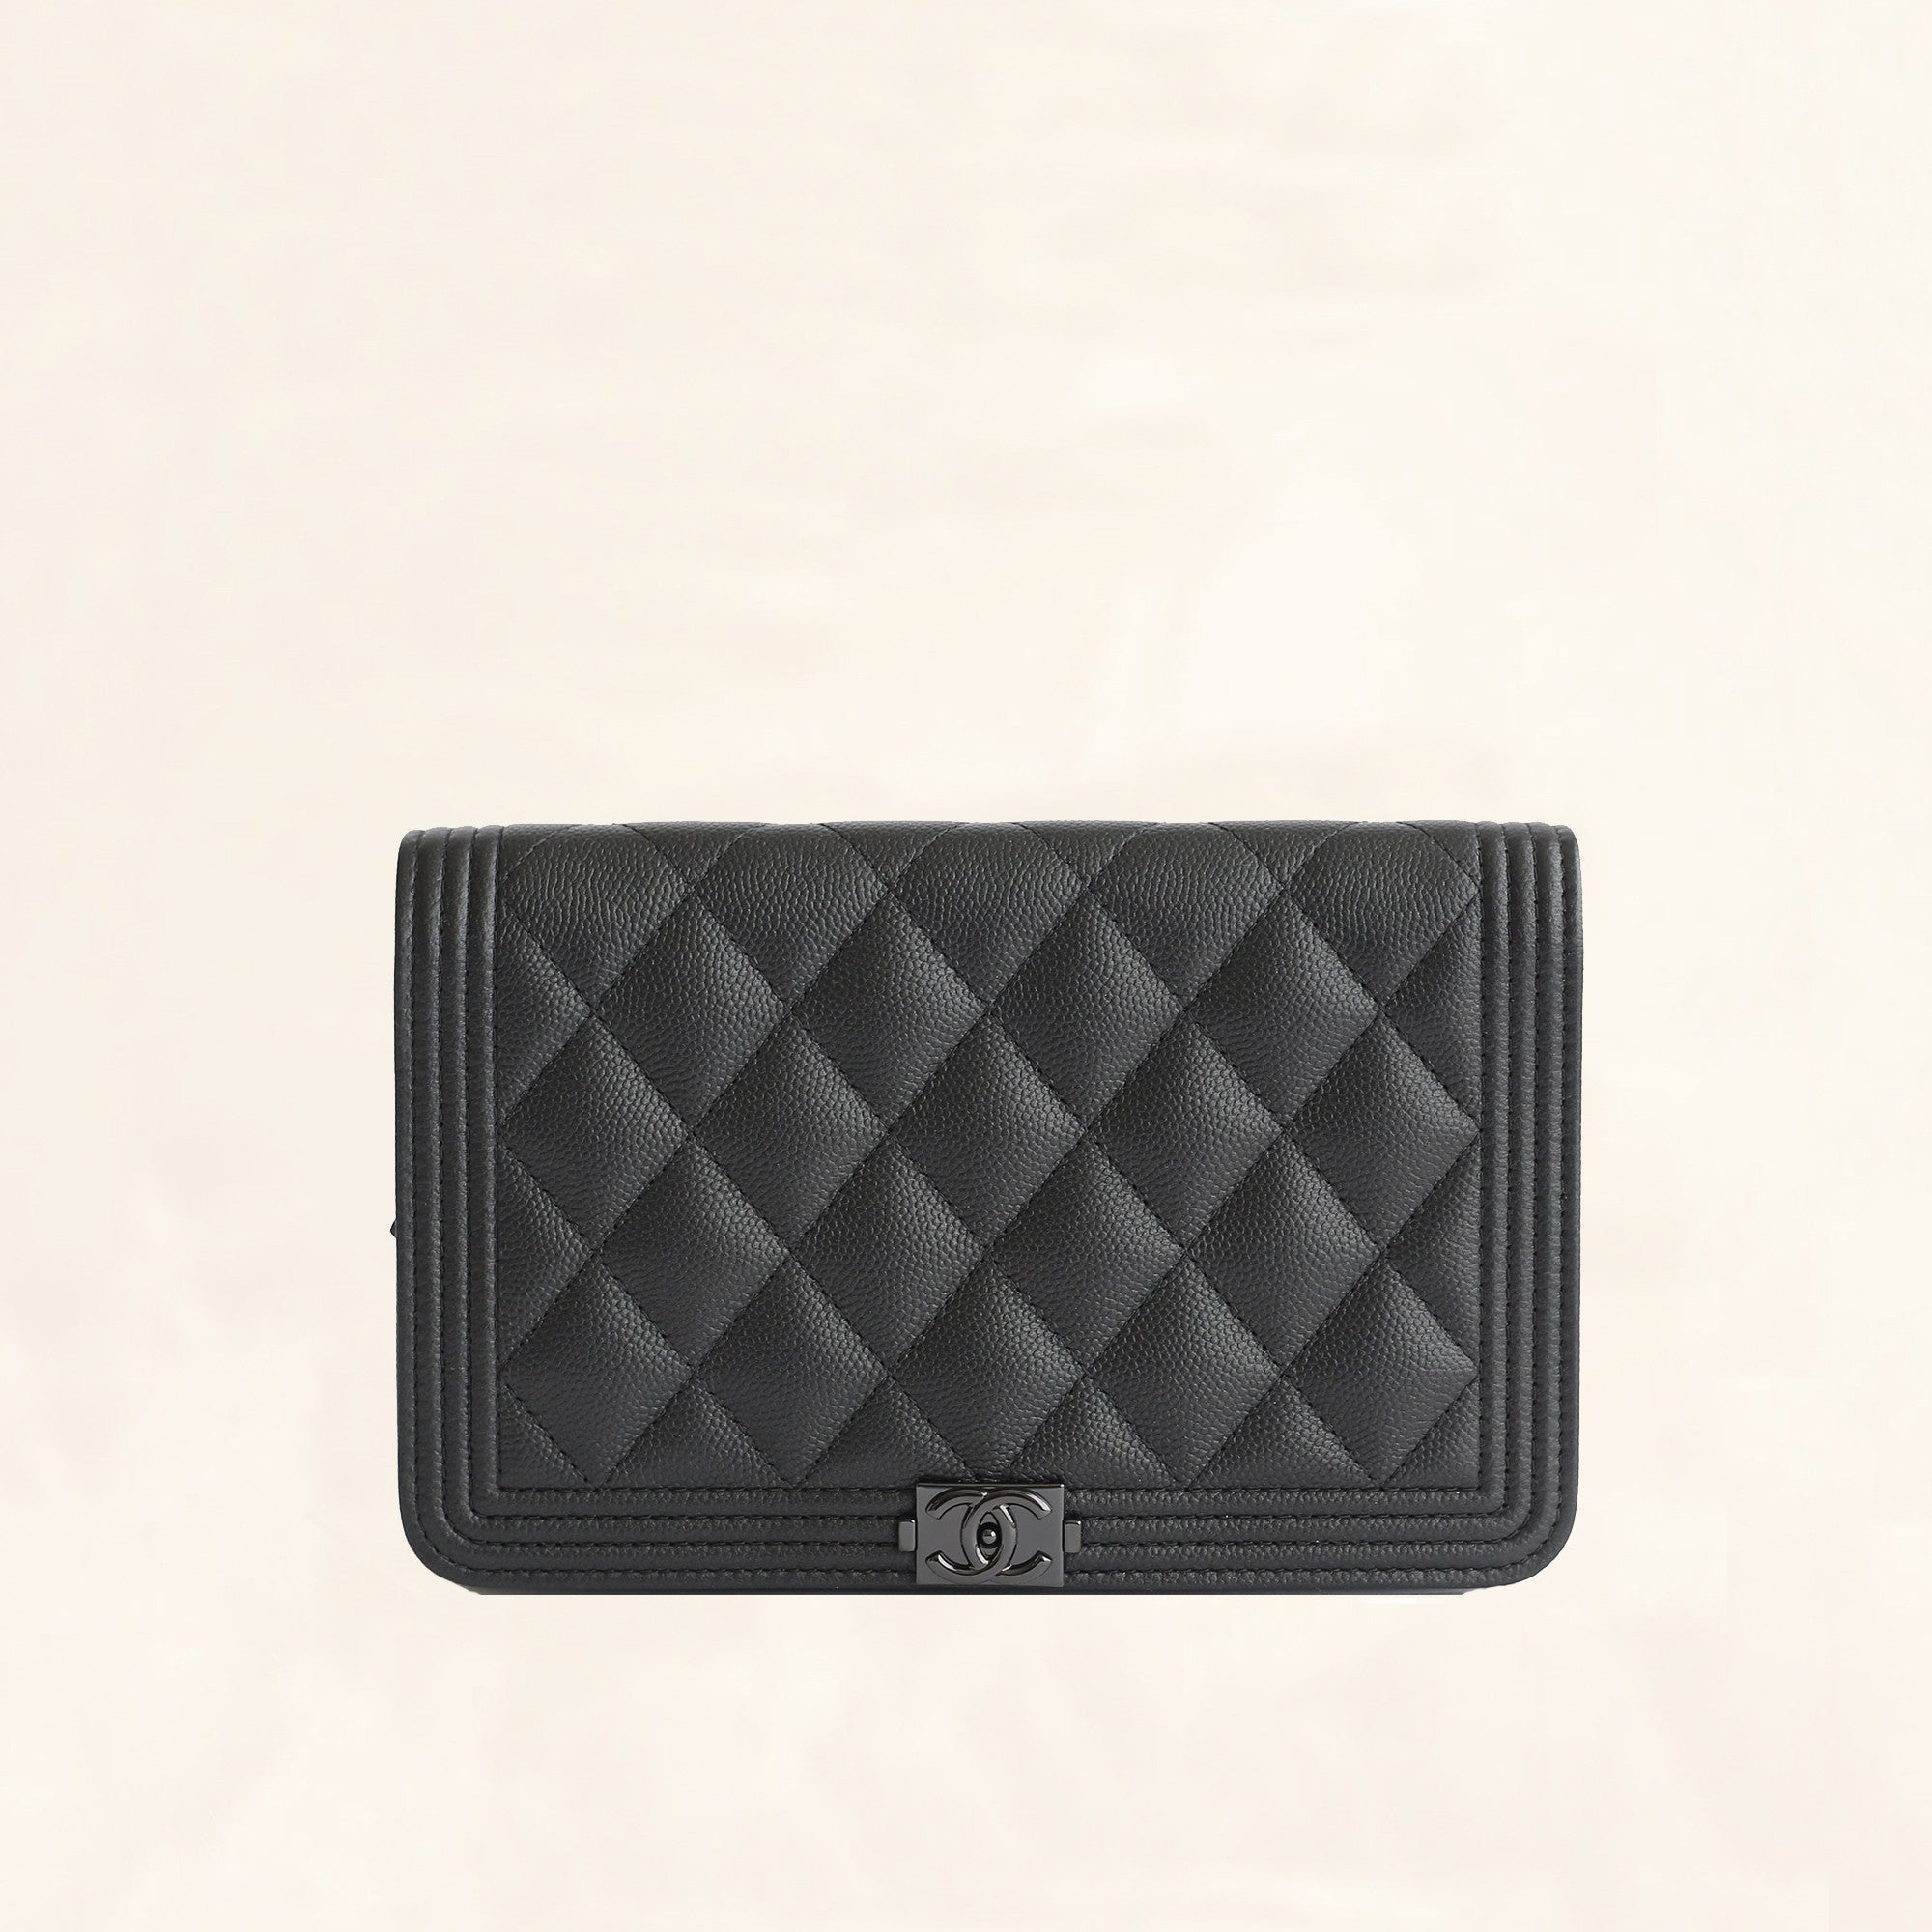 98a974ab48198c Chanel | Calfskin So Black Boy Wallet on Chain | WOC - The-Collectory